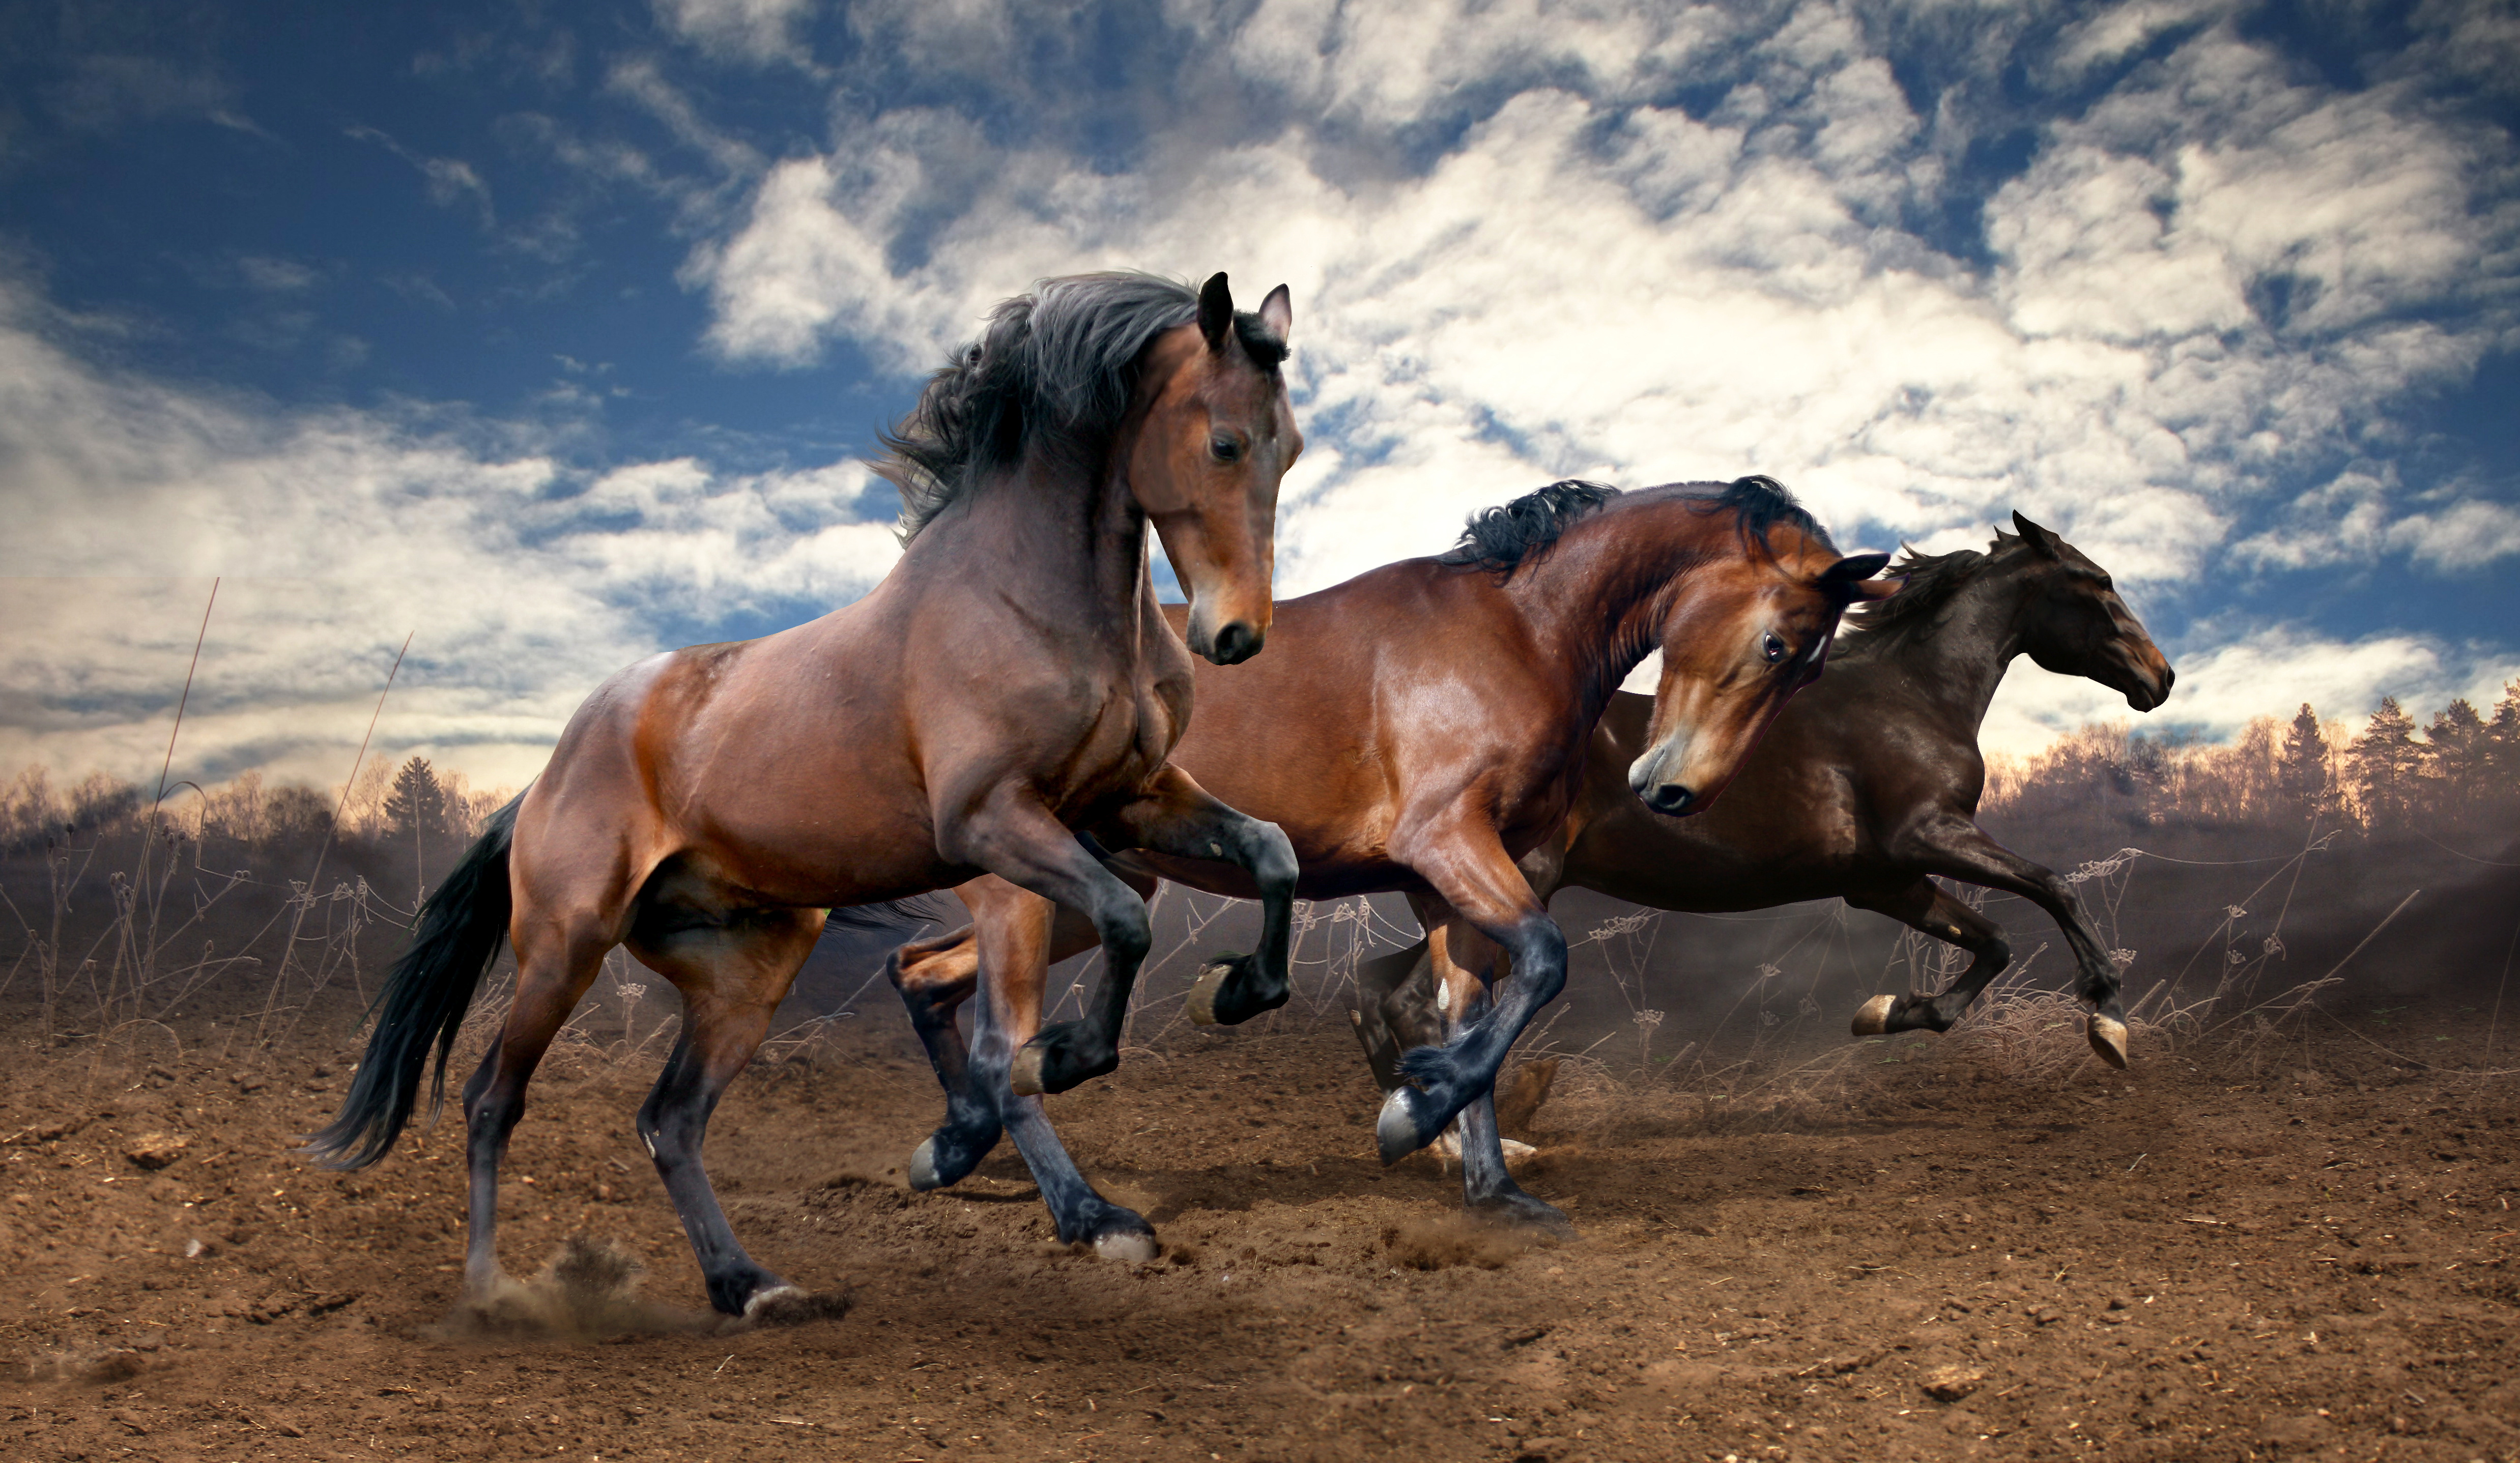 Horse 4k Ultra Hd Wallpaper National Geographic Funny